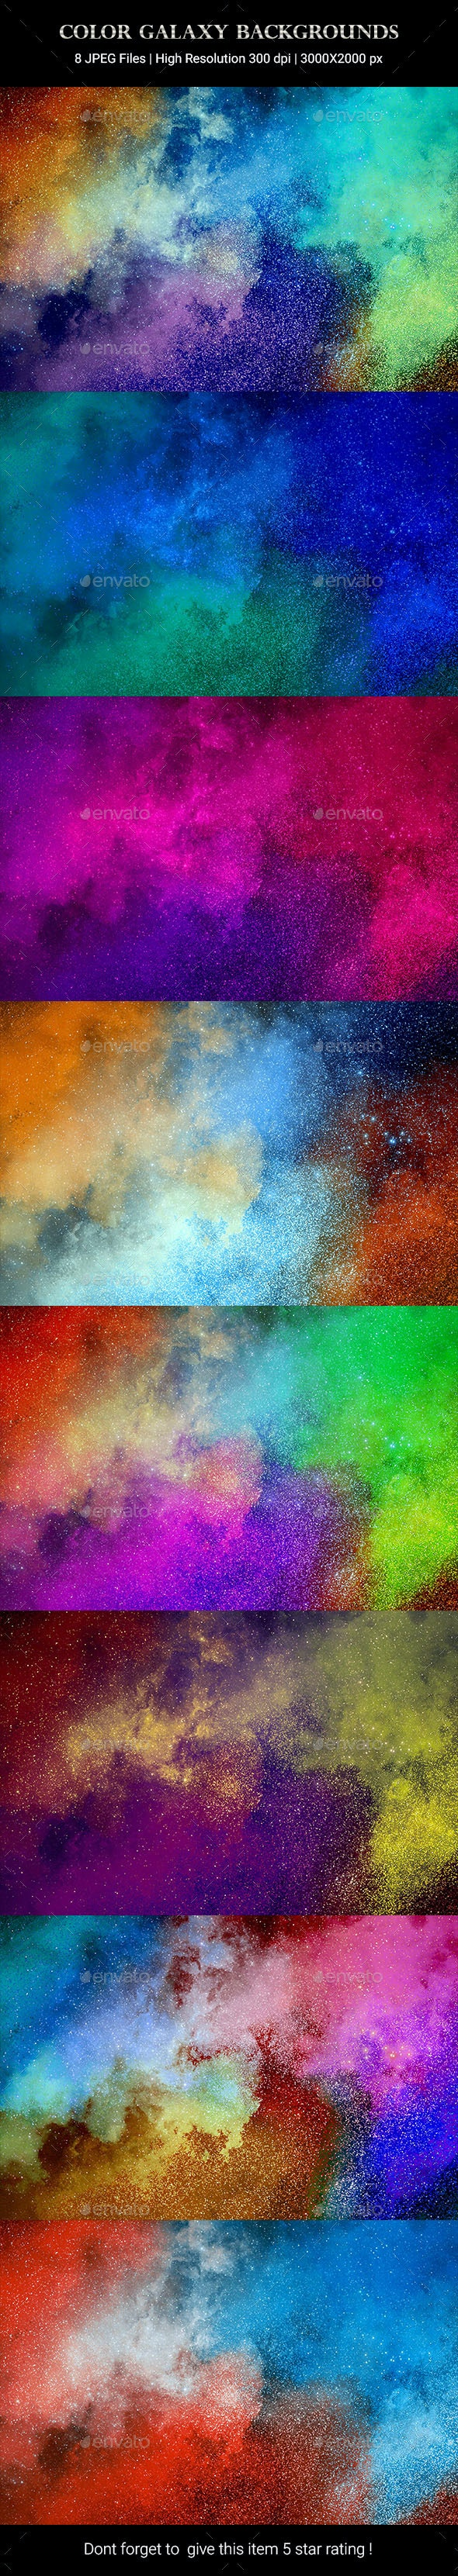 9 Color Galaxy Backgrounds - Backgrounds Graphics